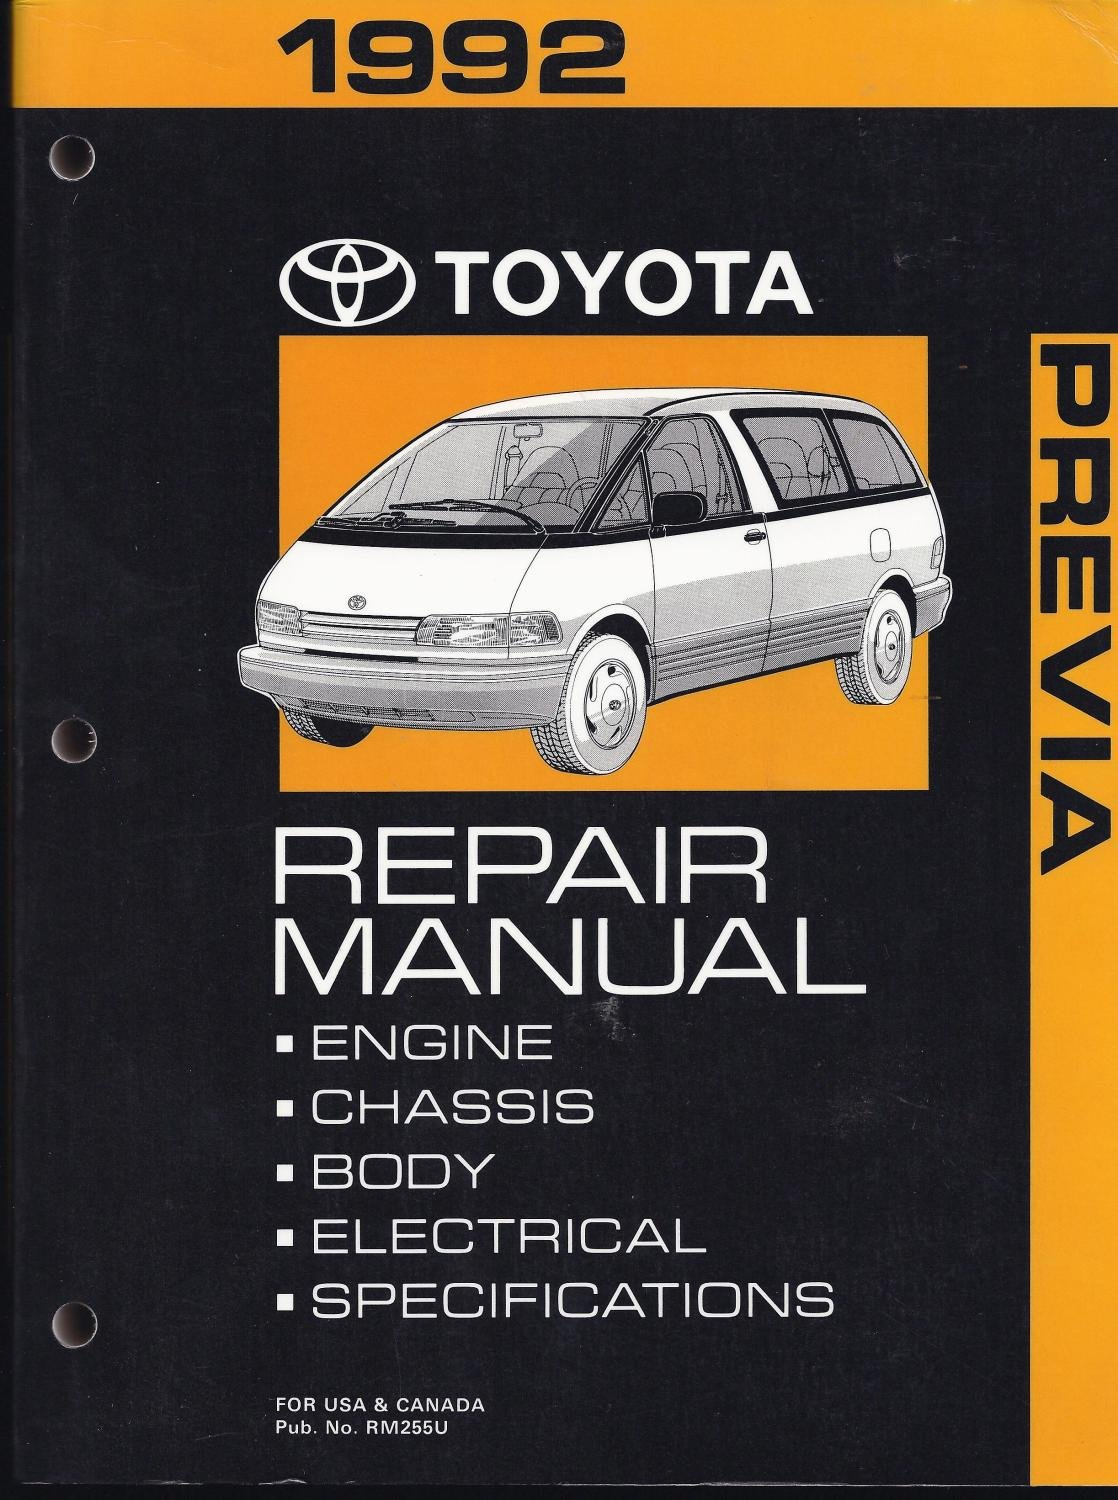 1992 Toyota Previa Repair Manual: Toyota Motor Corporation: Amazon.com:  Books